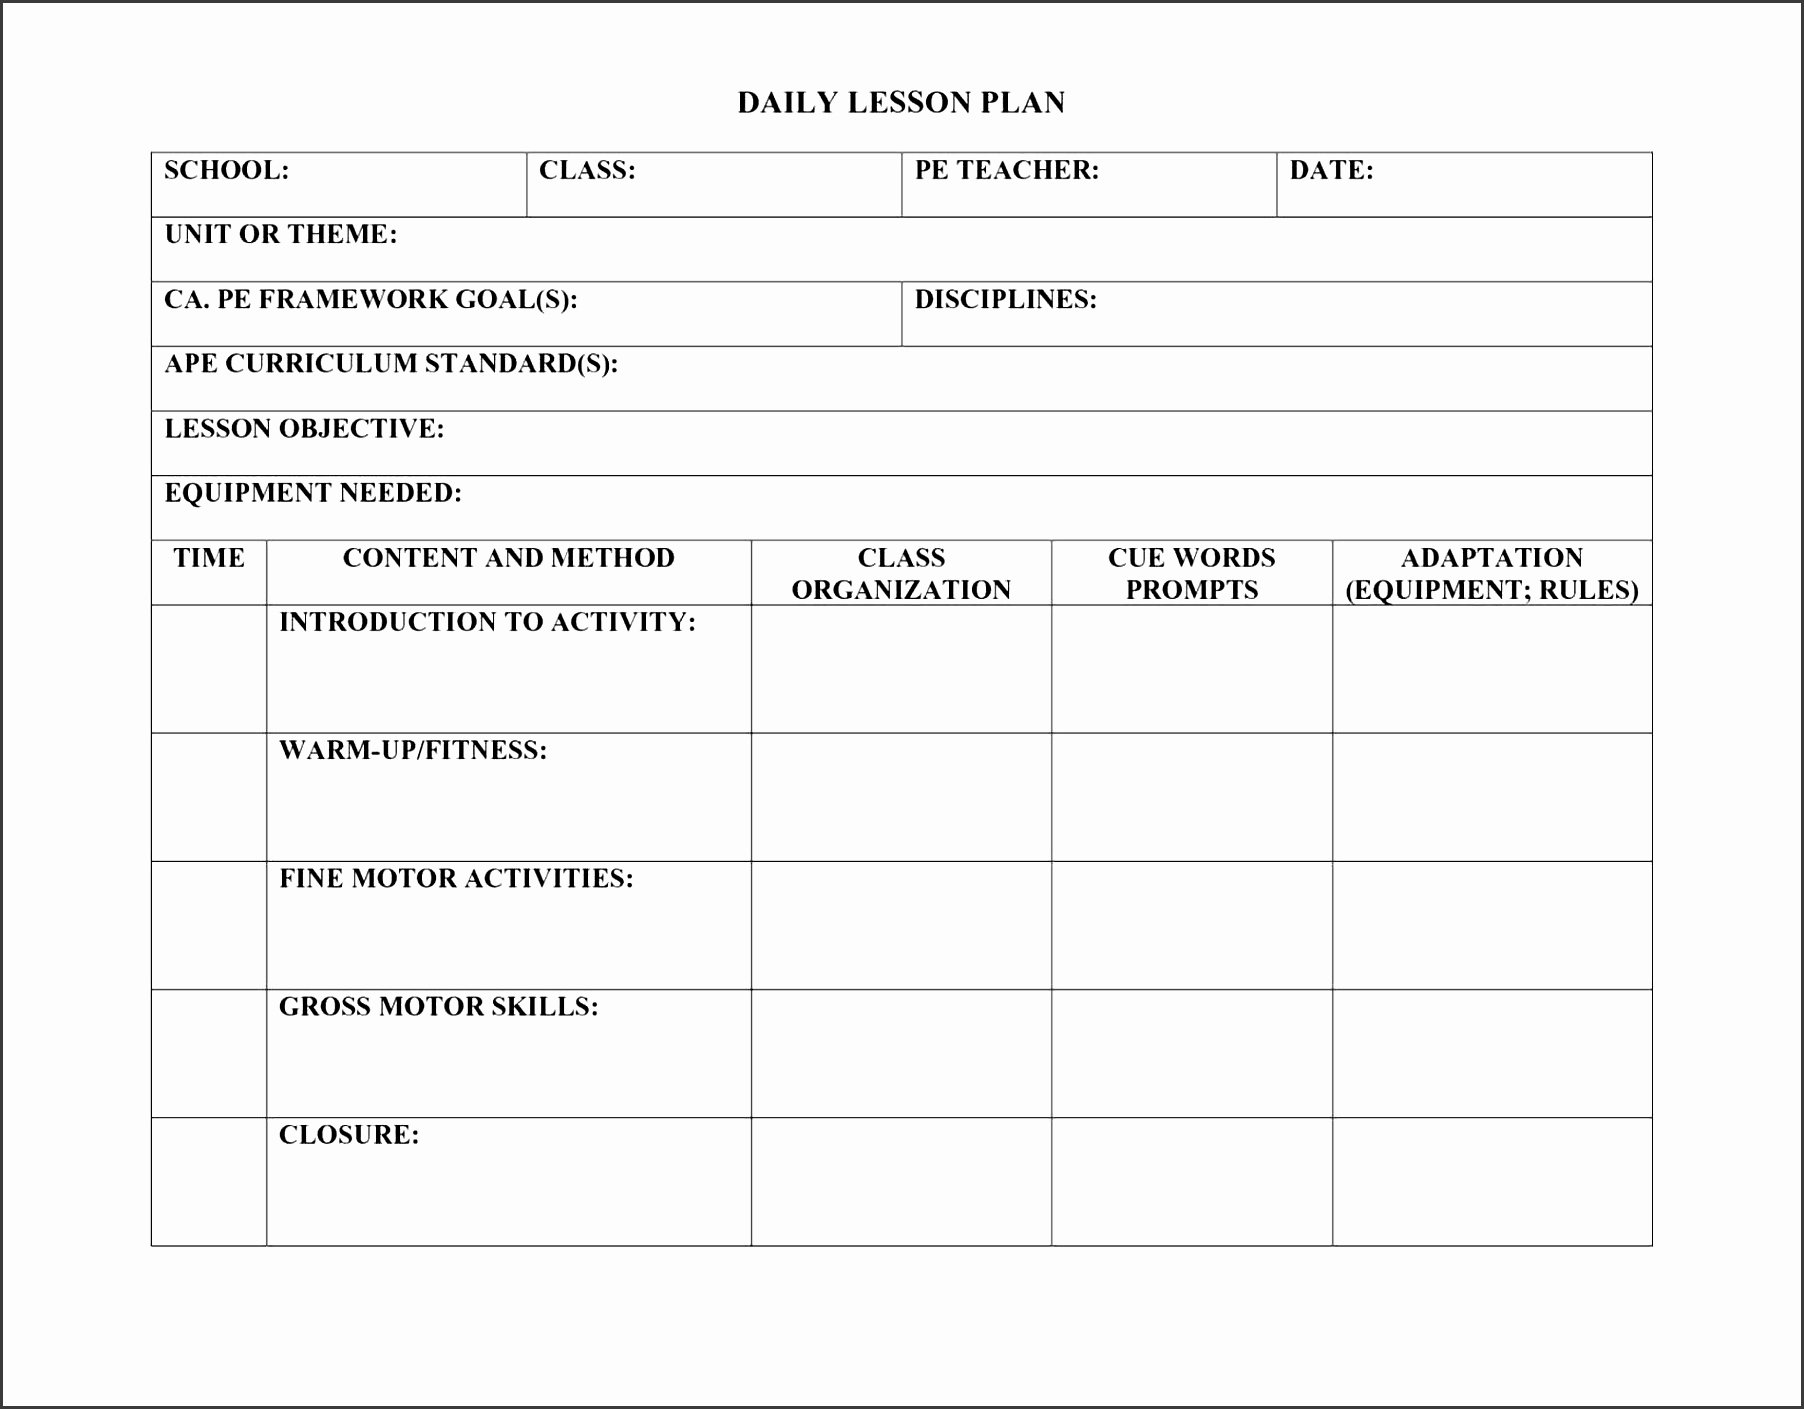 Daily Lesson Plan Template Pdf Lovely 5 Daily Lesson Planner for Free Sampletemplatess